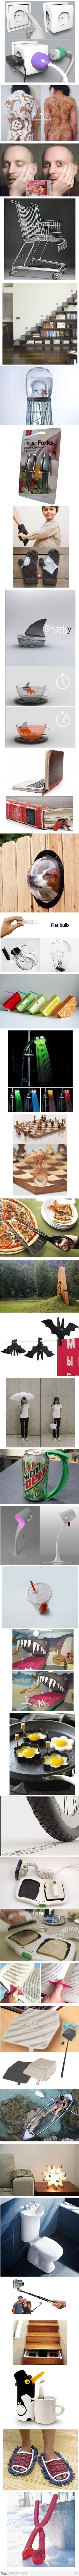 awesome inventions!: